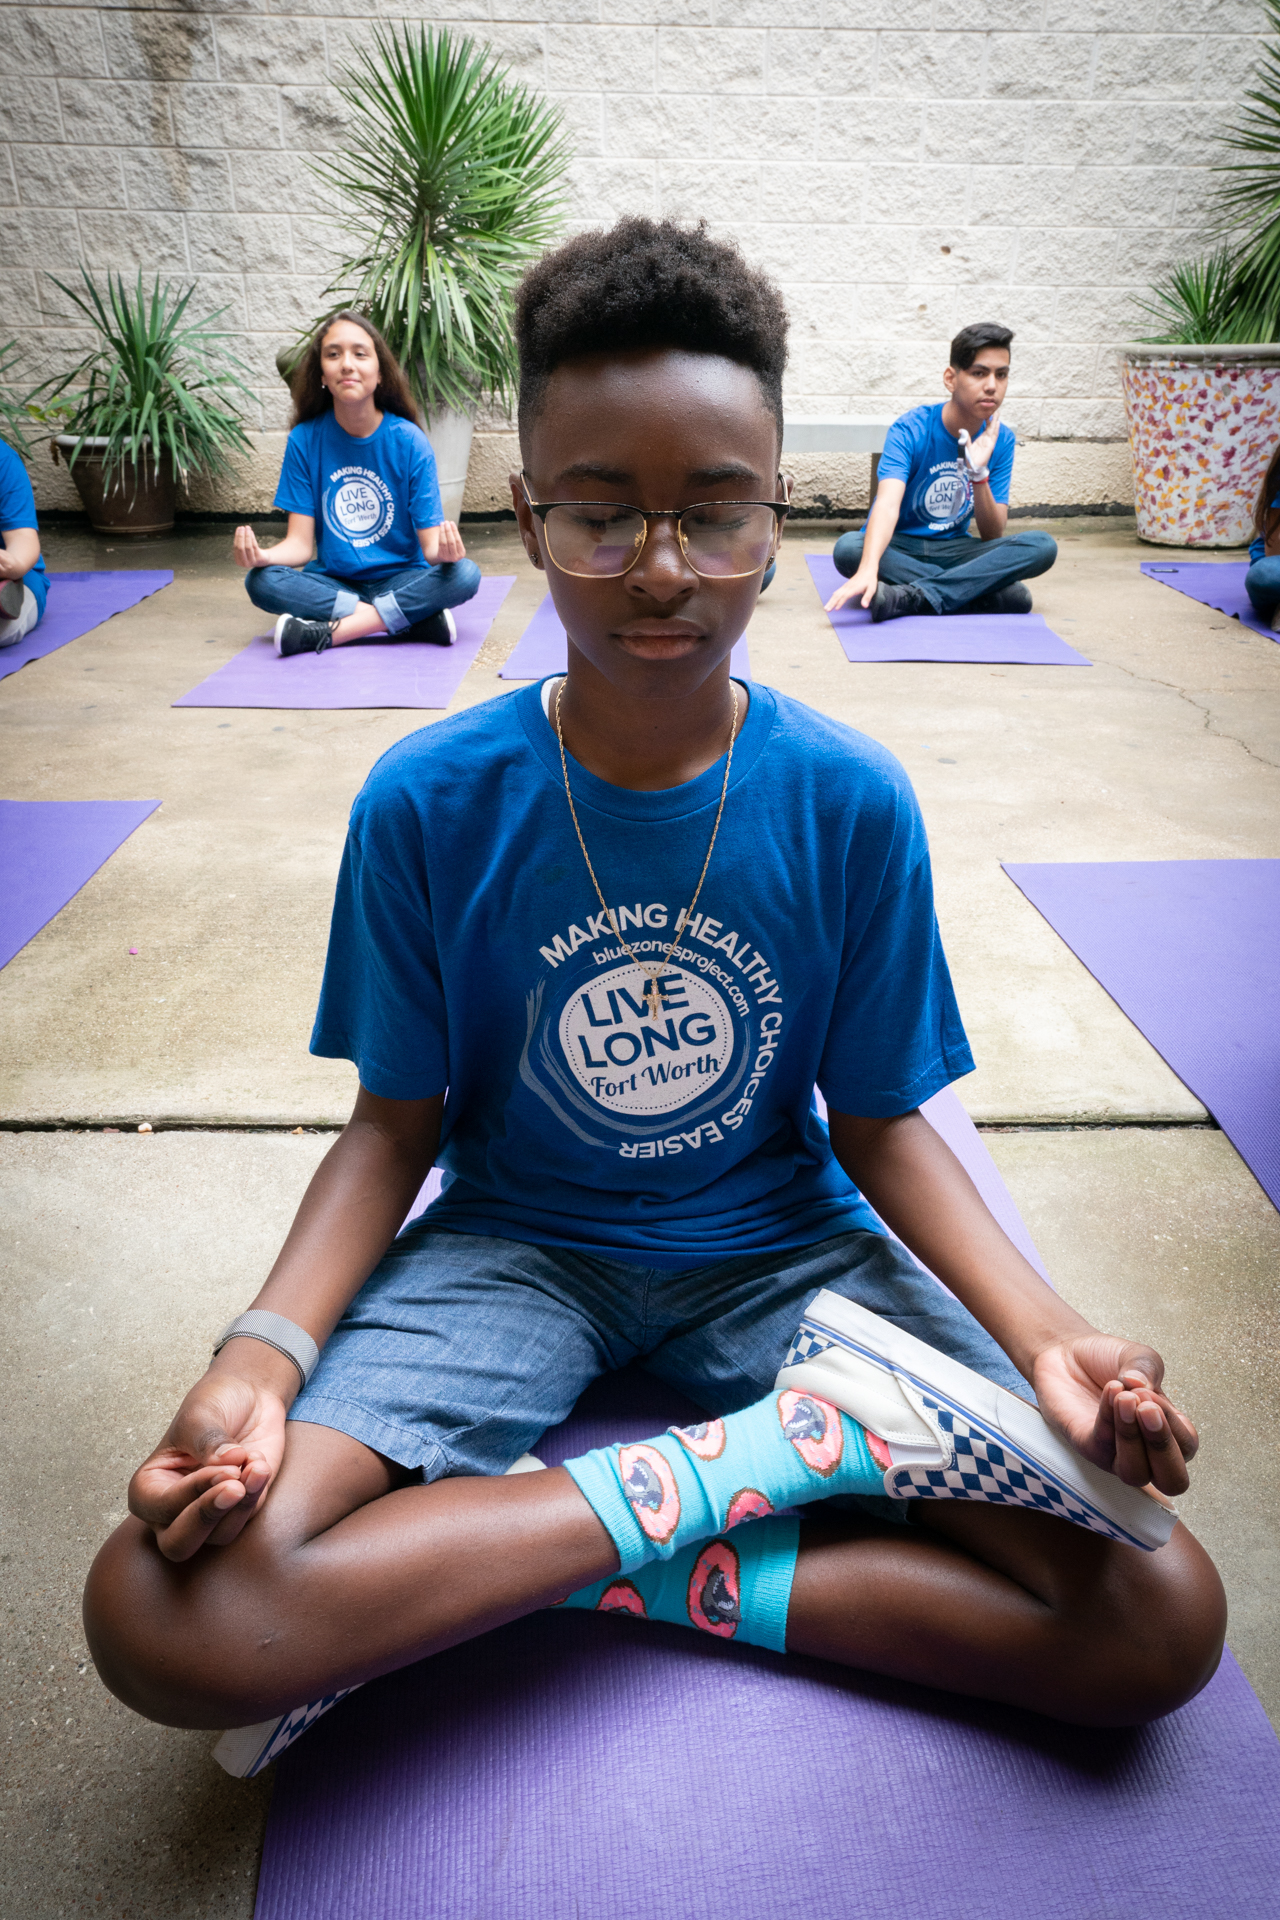 0013_2018-McLain-Sharecare-mid-school-yoga-379-2.jpg